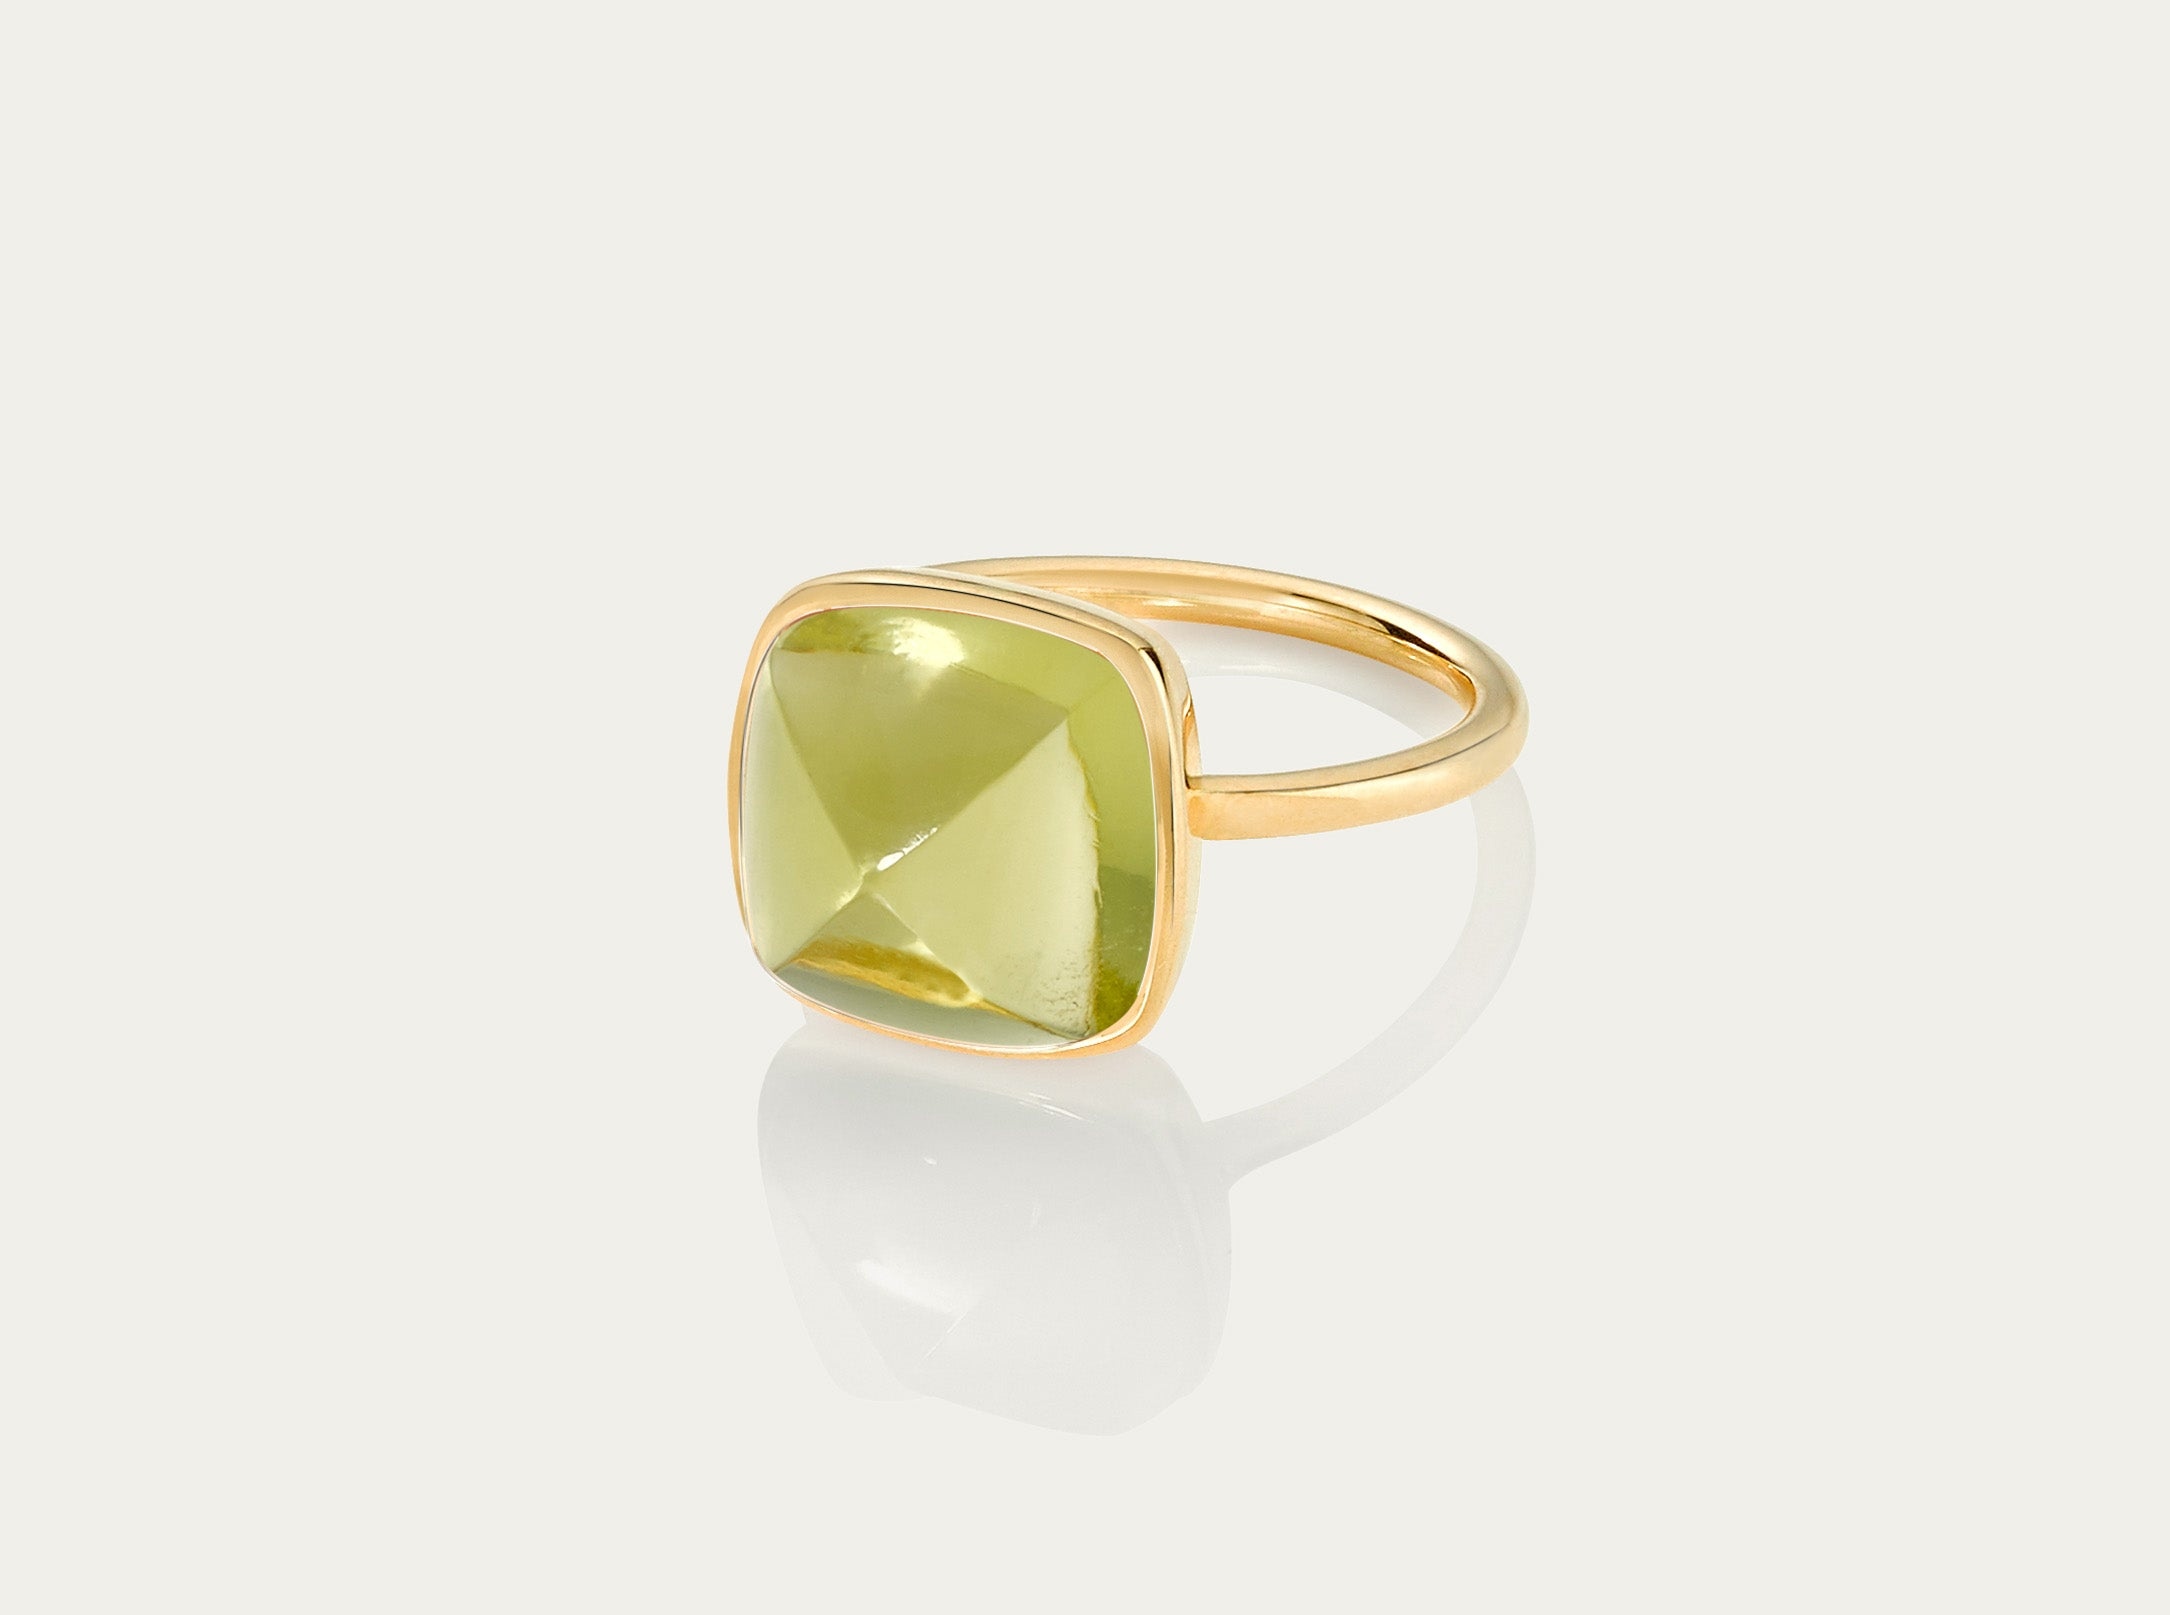 SUGARLOAF Cut Ring - LEMON TOPAZ 12MM, 18K Gold